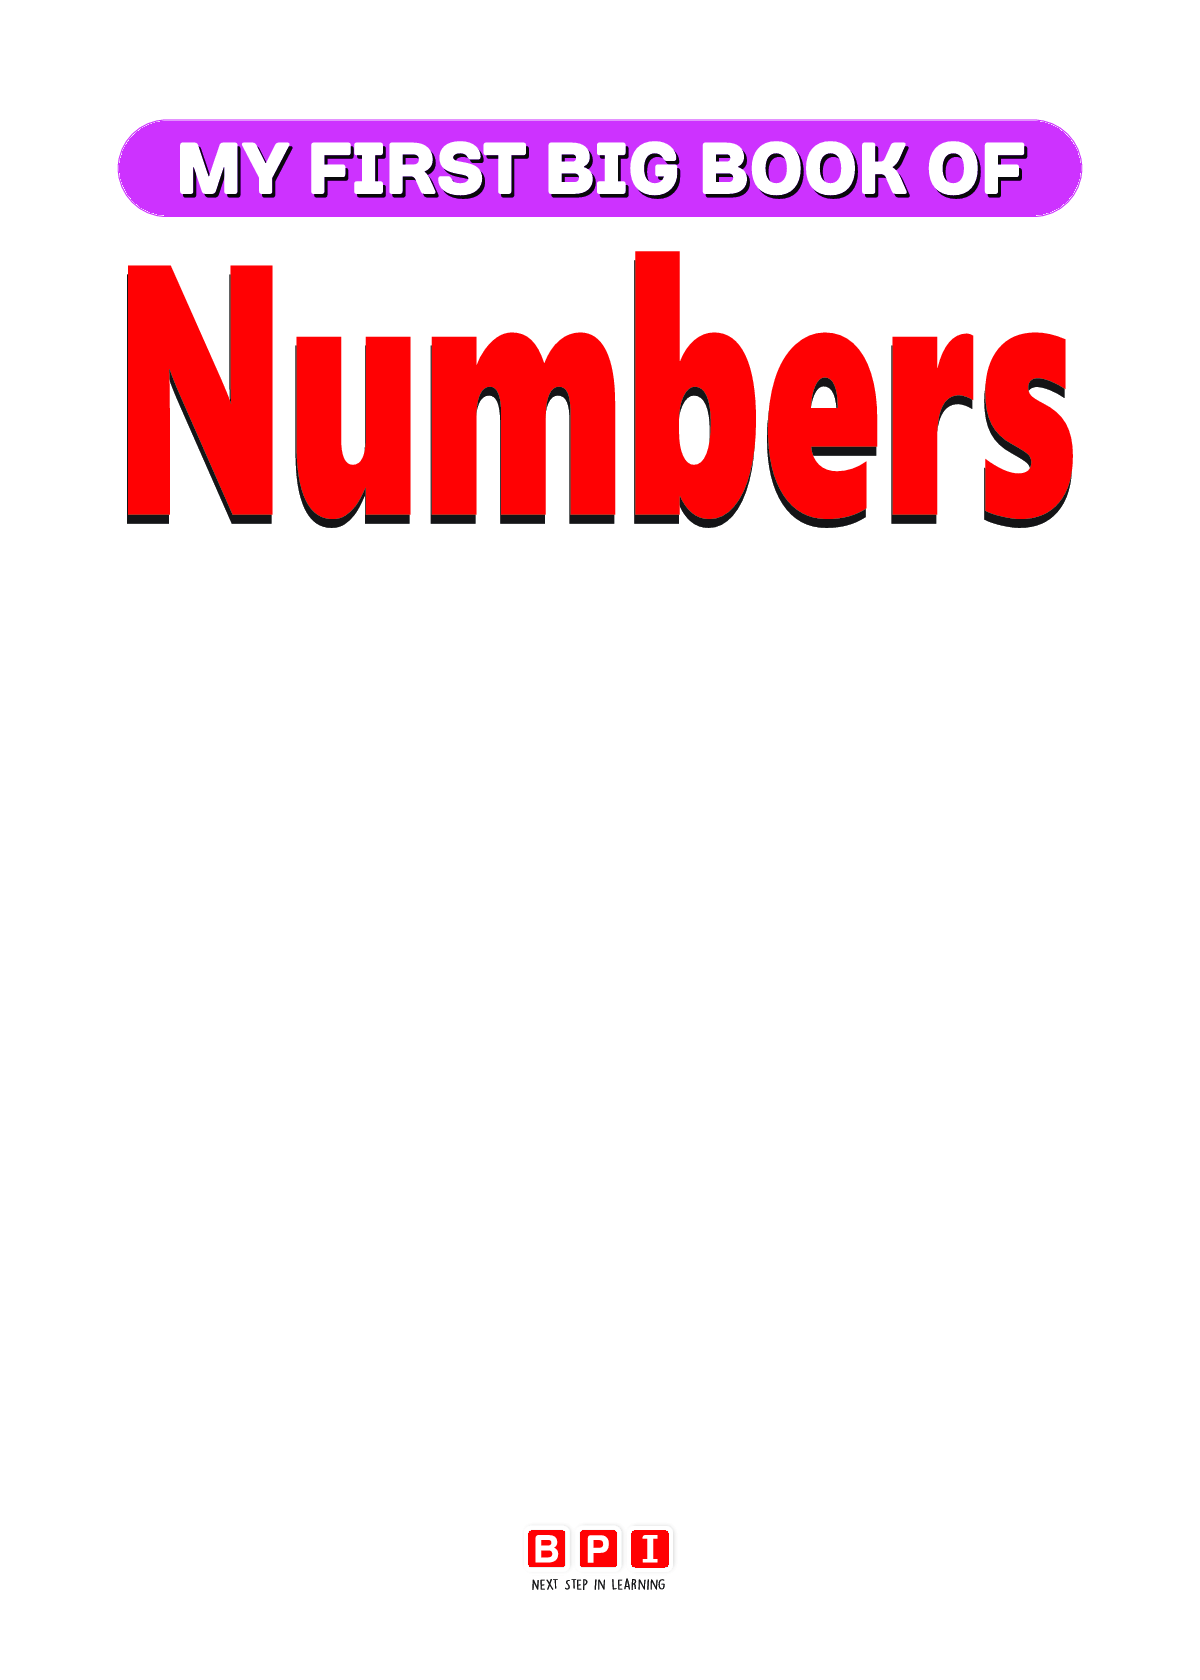 My First Big Book Of Numbers - Page 2